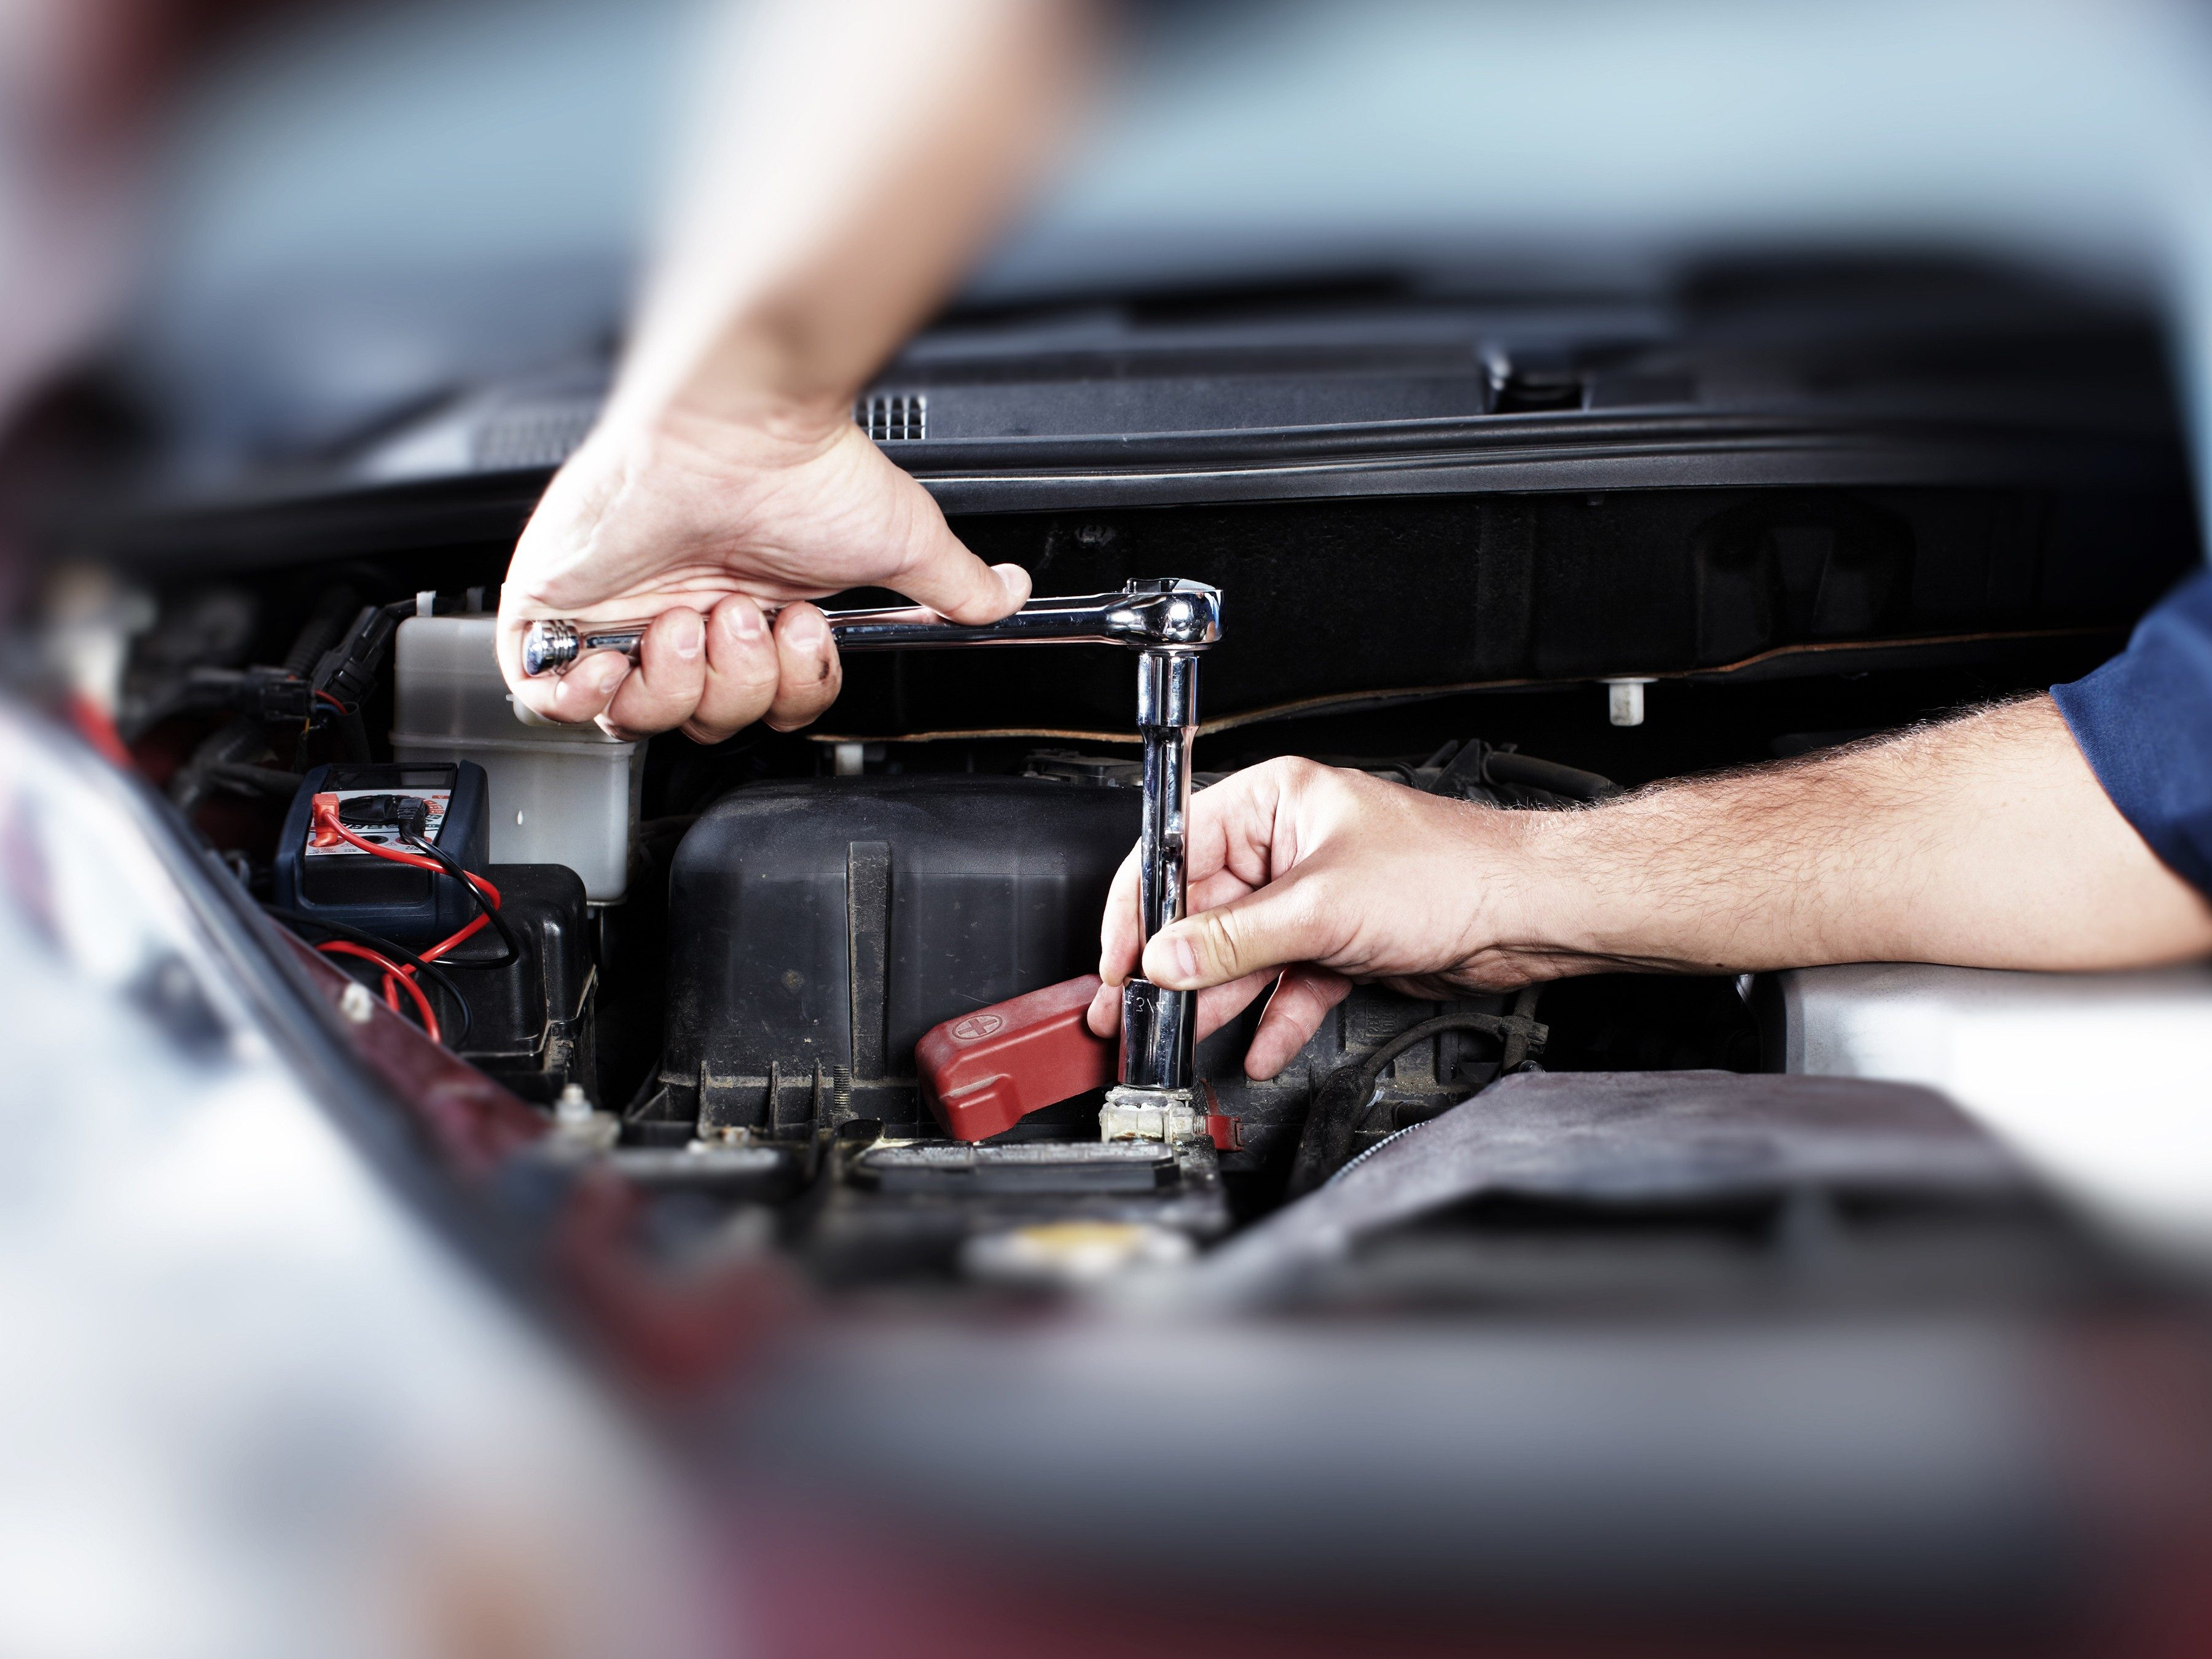 2. Ask the Mechanic for Your Old Parts